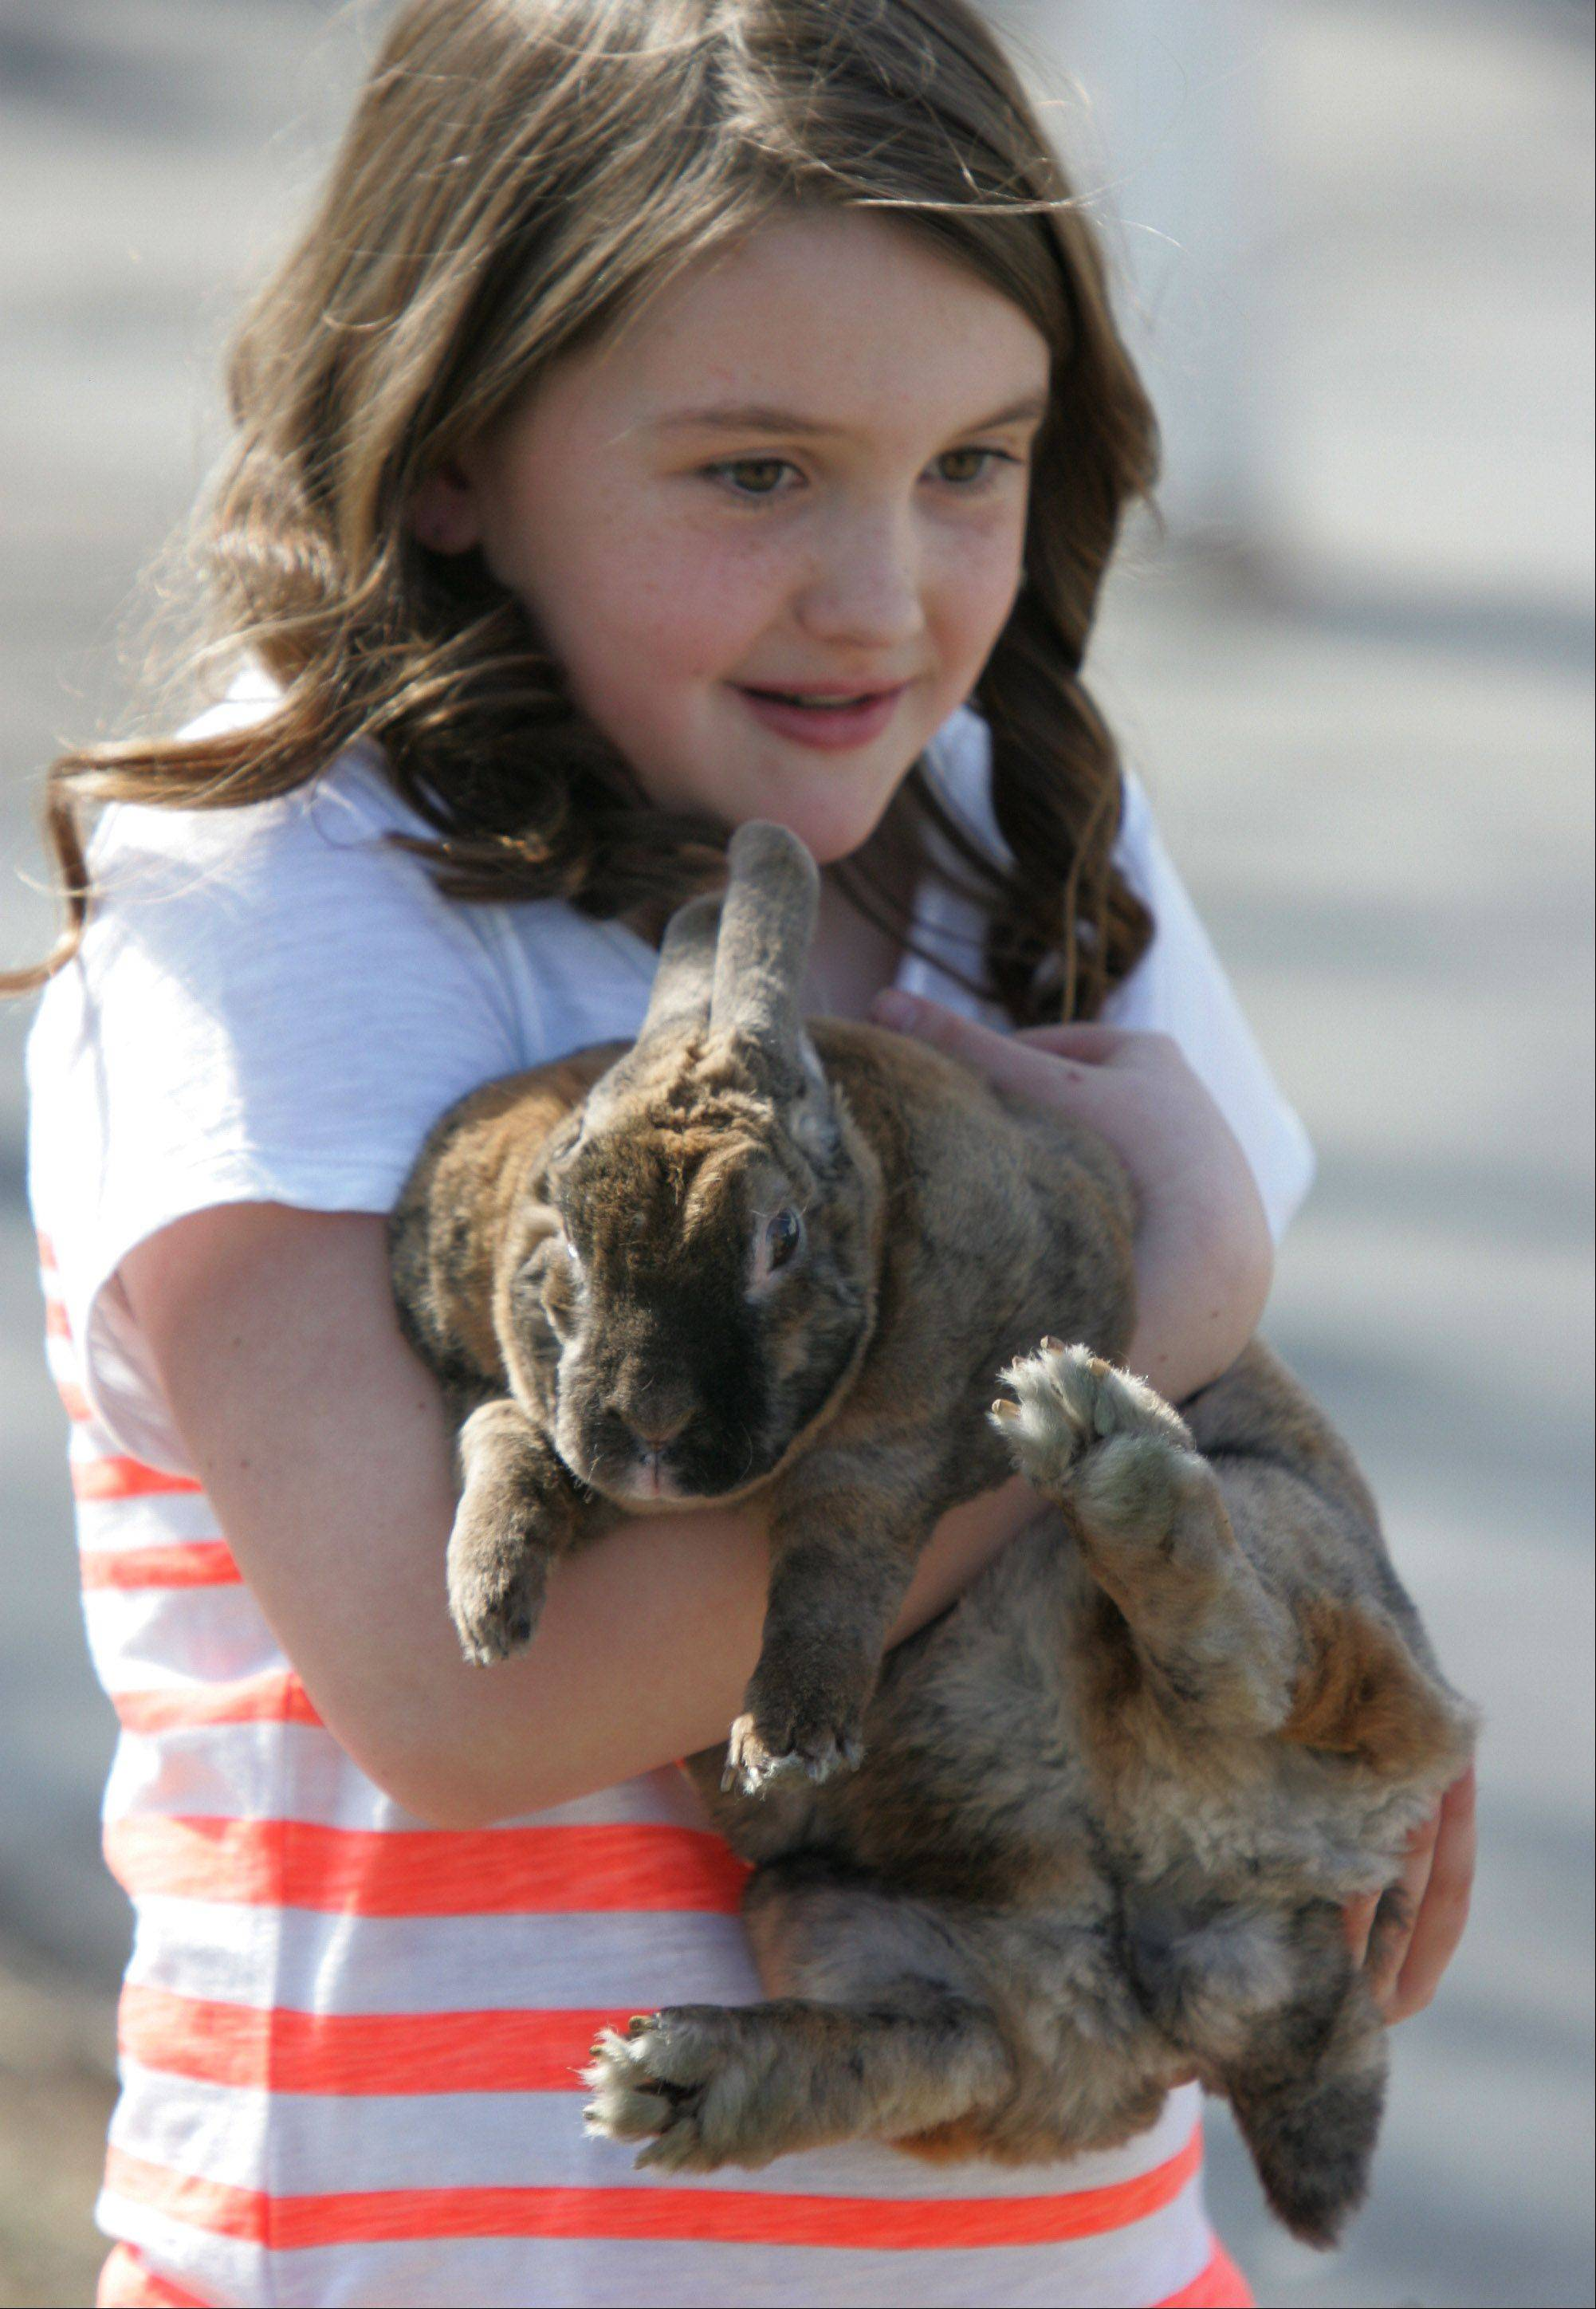 Chloe Crom, 9, of Island Lake, holds Cinnamon Bun, a rabbit, after the Easter egg hunt at Long Grove Community Church on Easter Sunday. Several rabbits were brought to the church for the children to hold and pet.